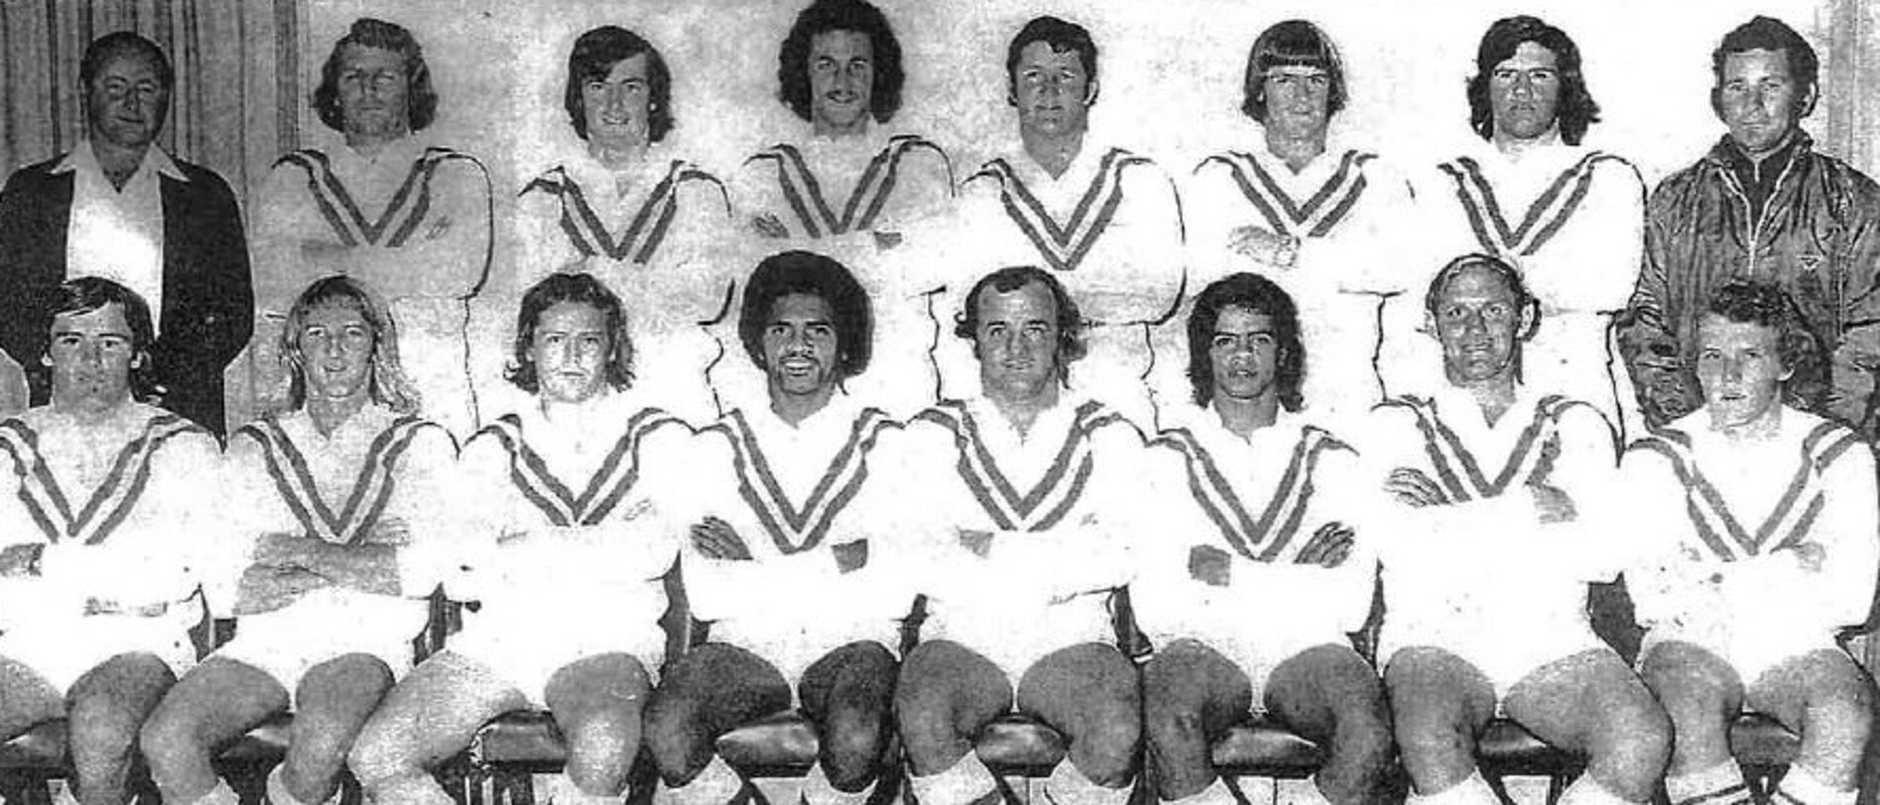 CHAMPIONS: The great South Grafton Rebels premiership team of 1975, from back left: John Neville (manager), Ray Ide, Garry Chapman, Garvin Cannon, Mark Eggins, Peter Hambly, Gary Davis, Graham Peters (strapper). Front: John O'Donoghue, Les Ratcliffe, Alan Ryan, John Ferguson, John Brown (captain-coach), Ron Phillips, Frank White, Steve Martin. Absent: Alan Reed, Rick King.